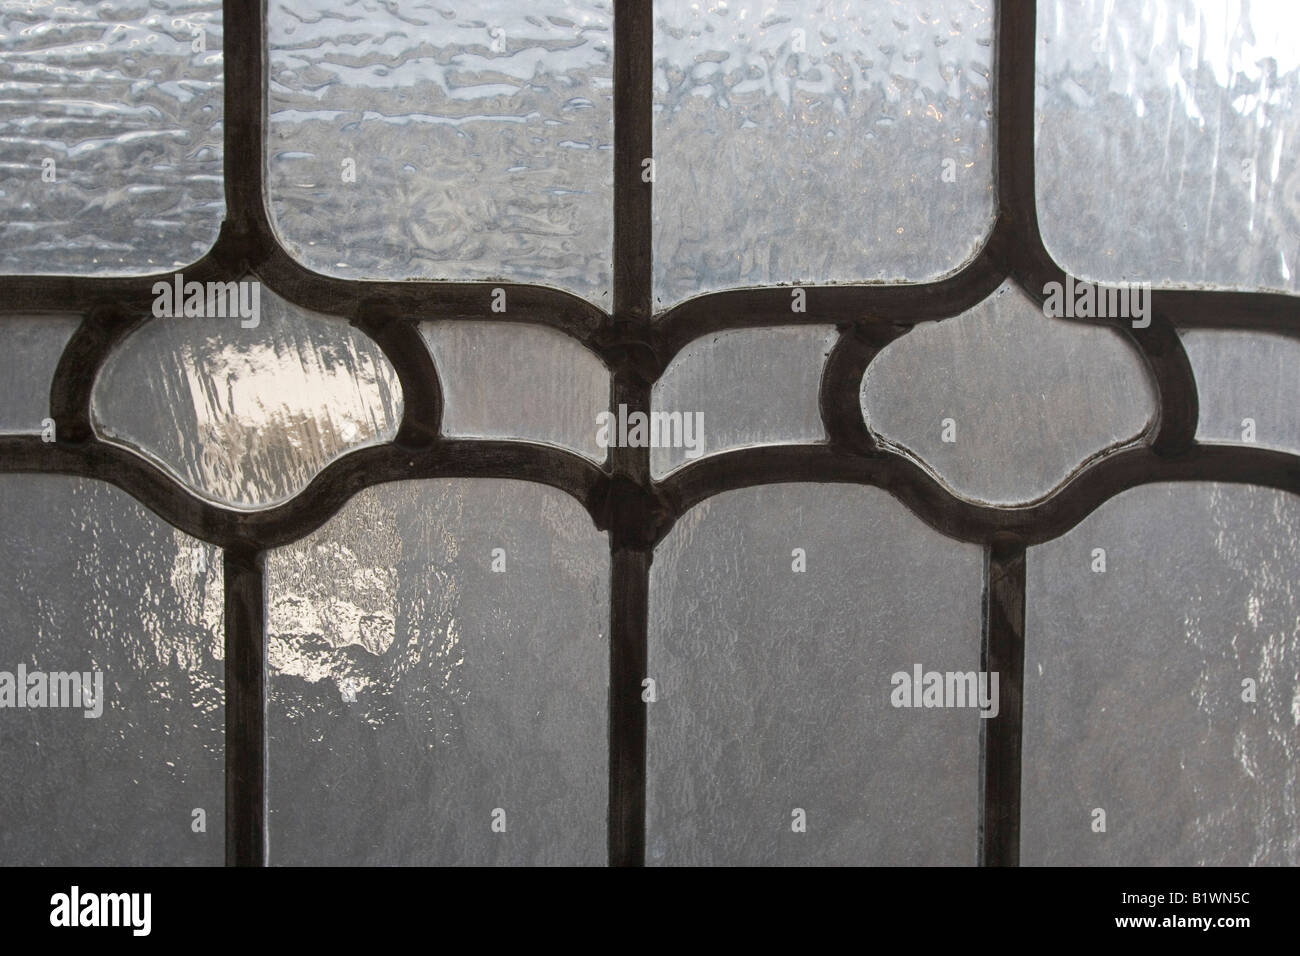 A detail of lead came on newly installed windows. - Stock Image